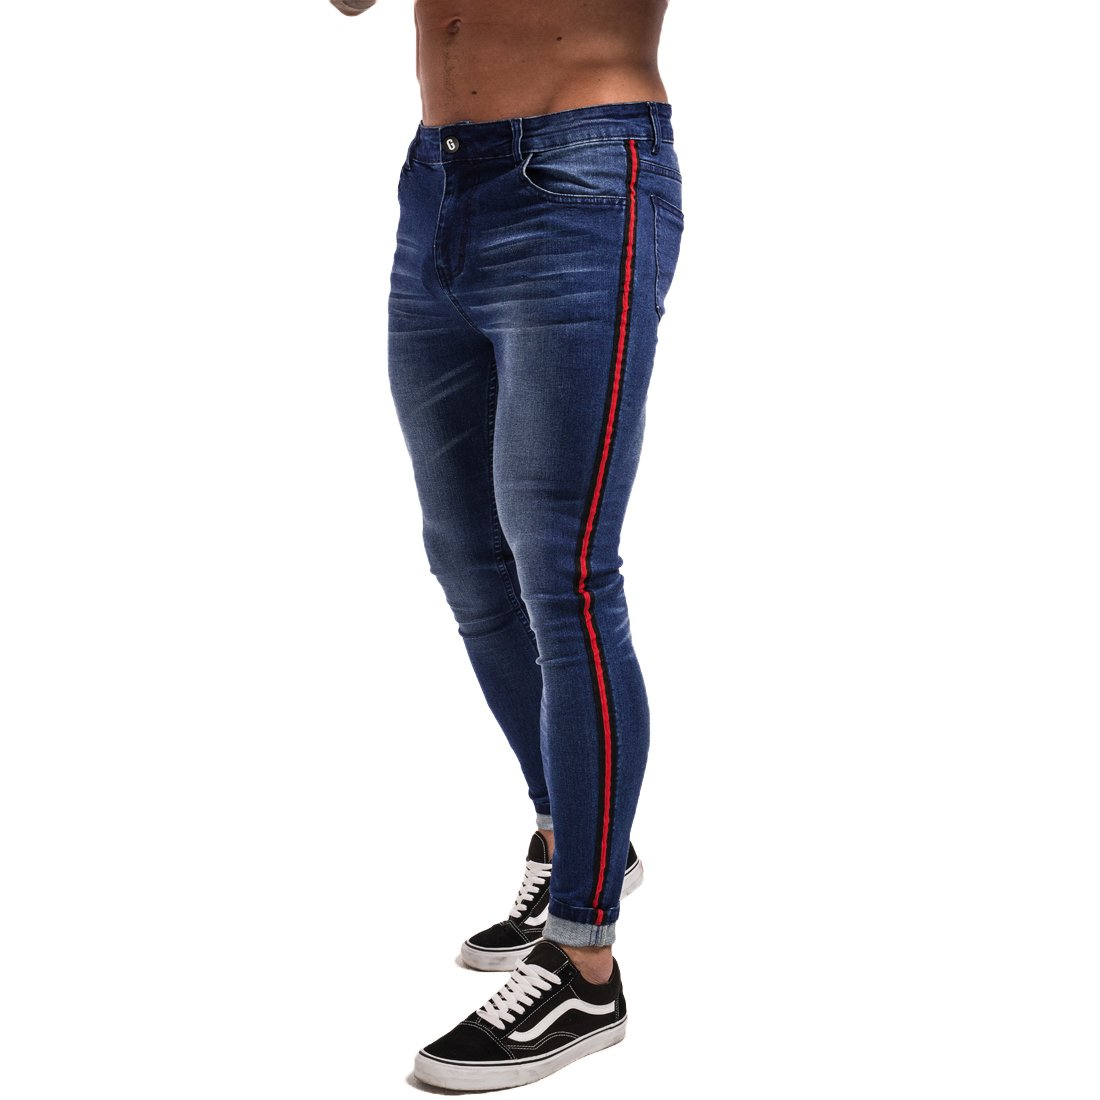 d66b359366e0 The Jeans Are Made of Cotton and Spandex, Which Made Them Very Comfortable  and Stretchy You Will Hardly Find These Jeans That Are Tight Around The  Ankle ...